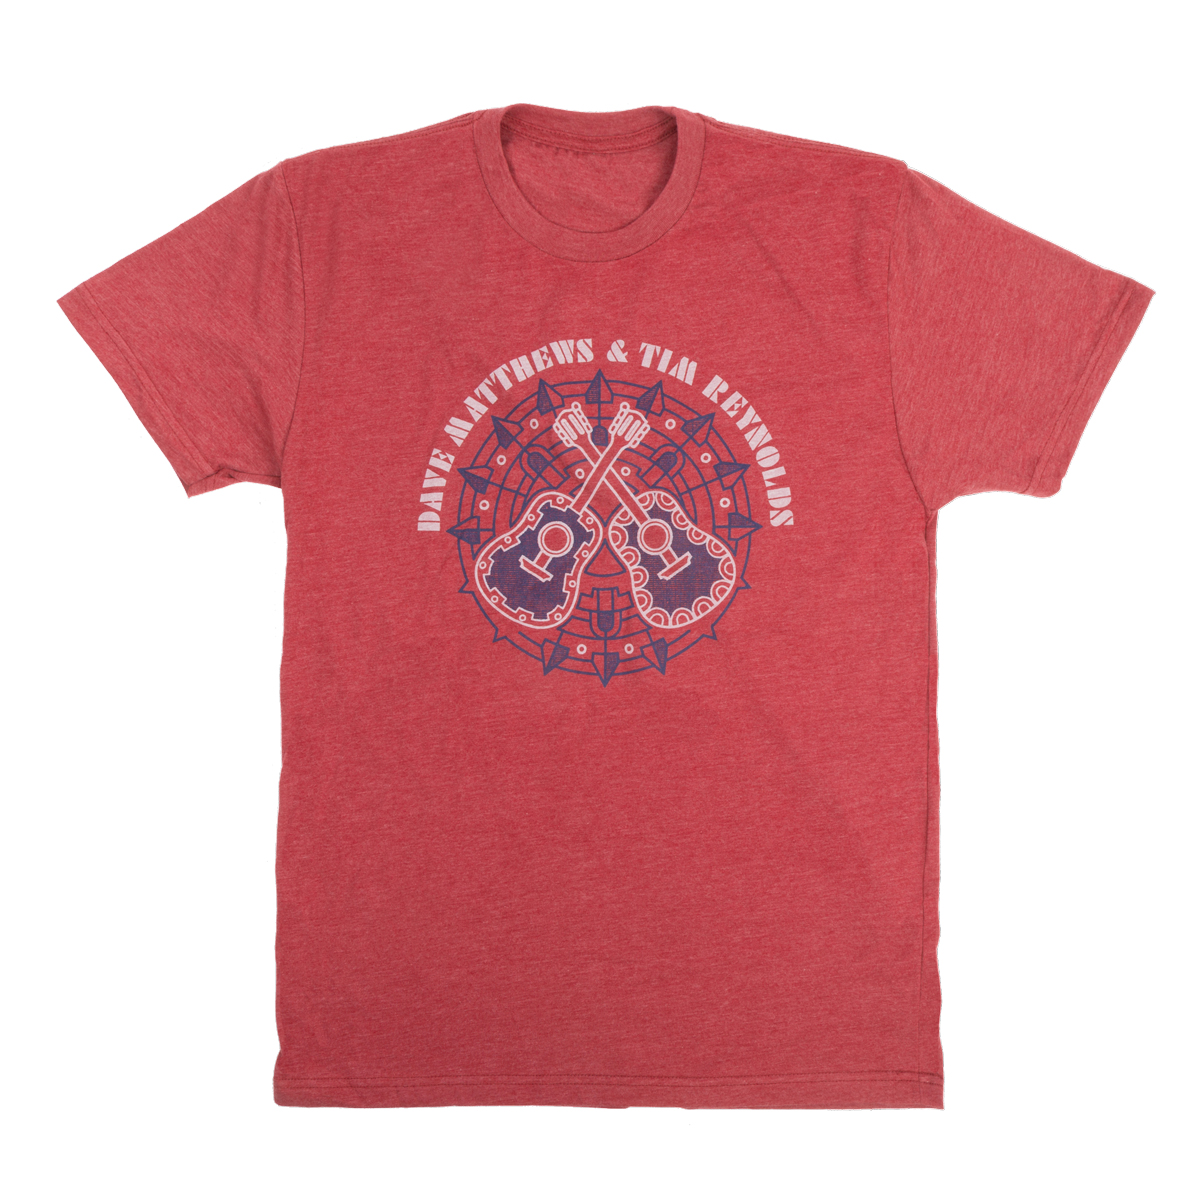 Dave & Tim Crossed Guitars Men's Tee